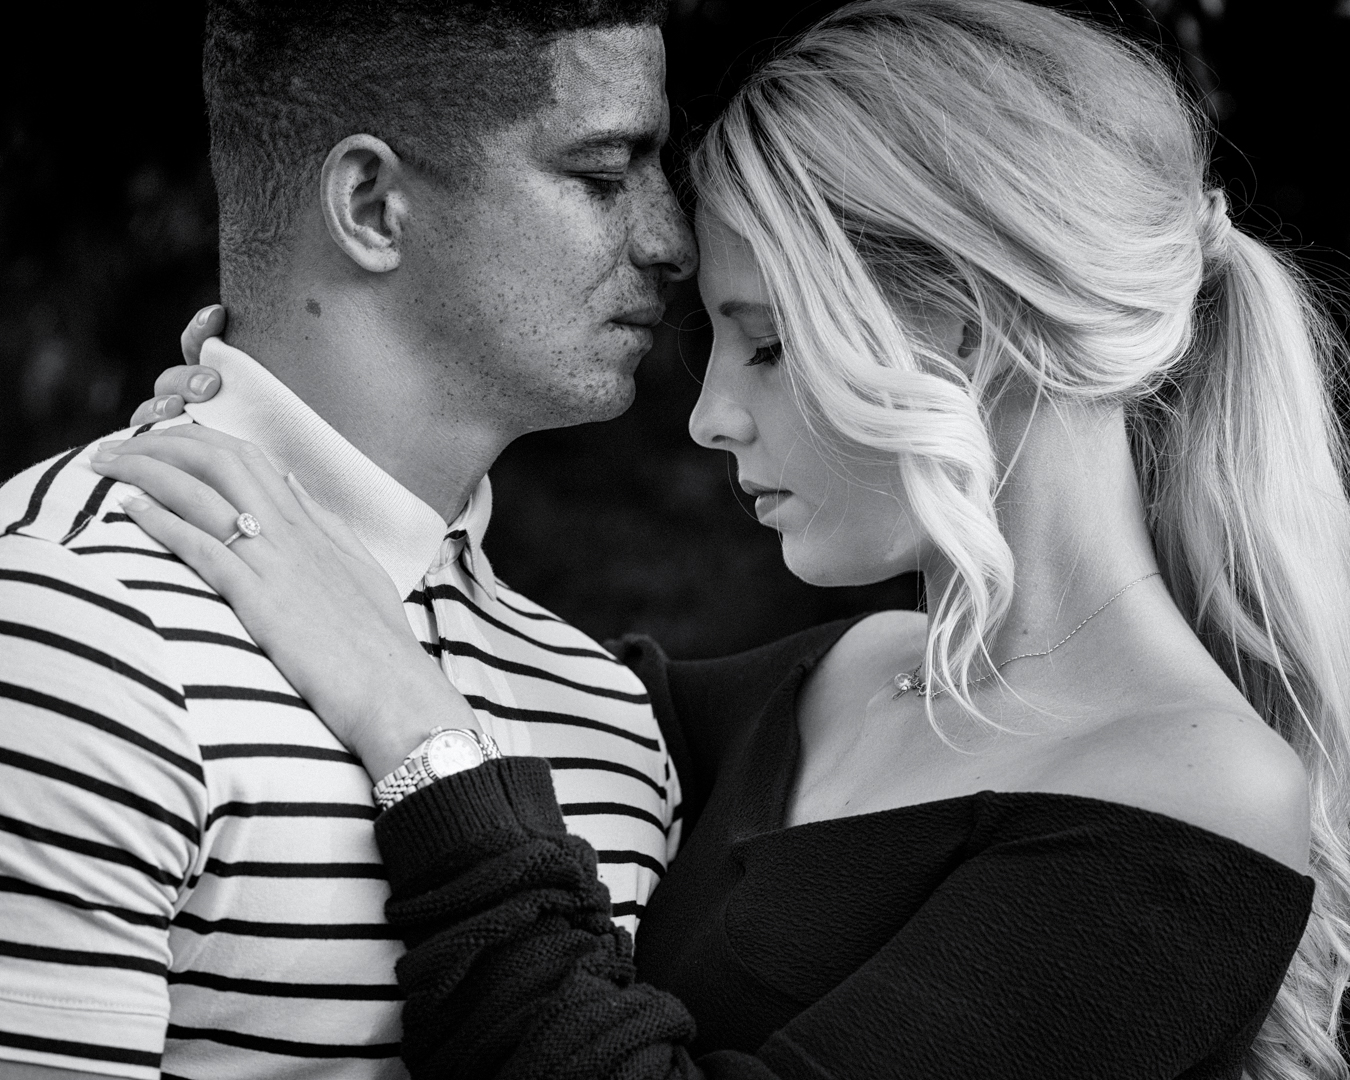 engagement session in harefield 50 - Couples Gallery